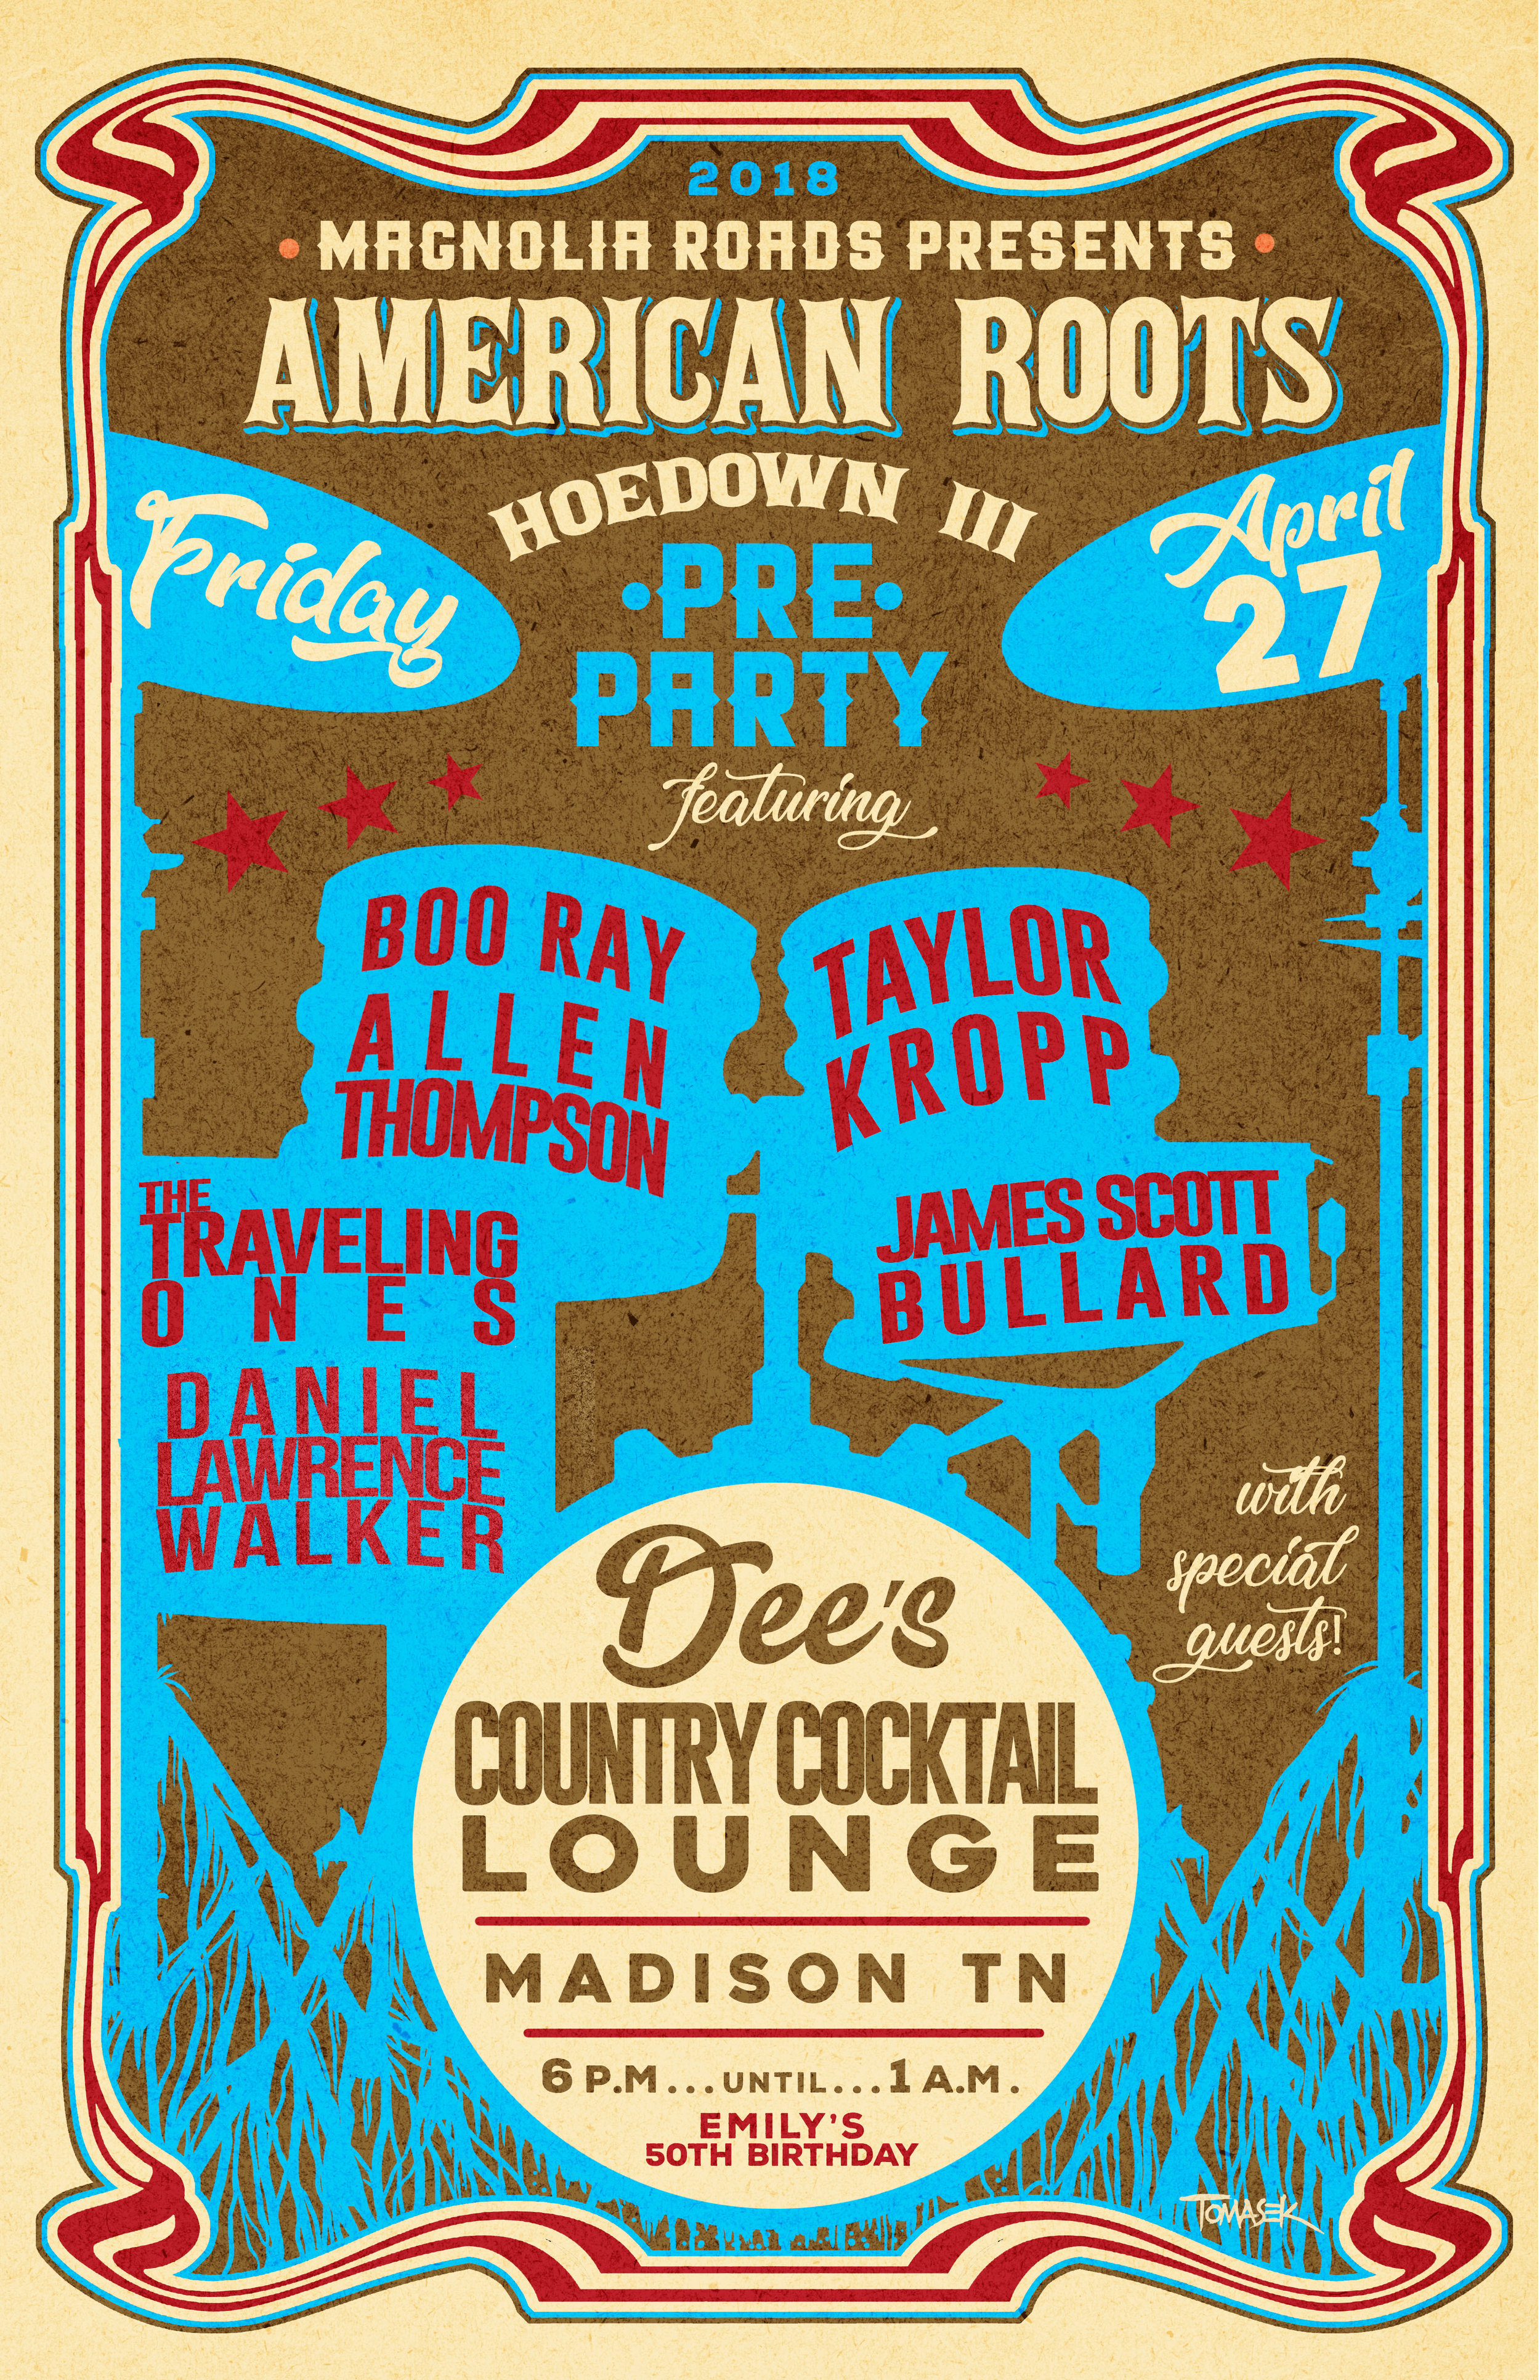 MagRds American Roots Hoedown Pre Party 18v2.jpg